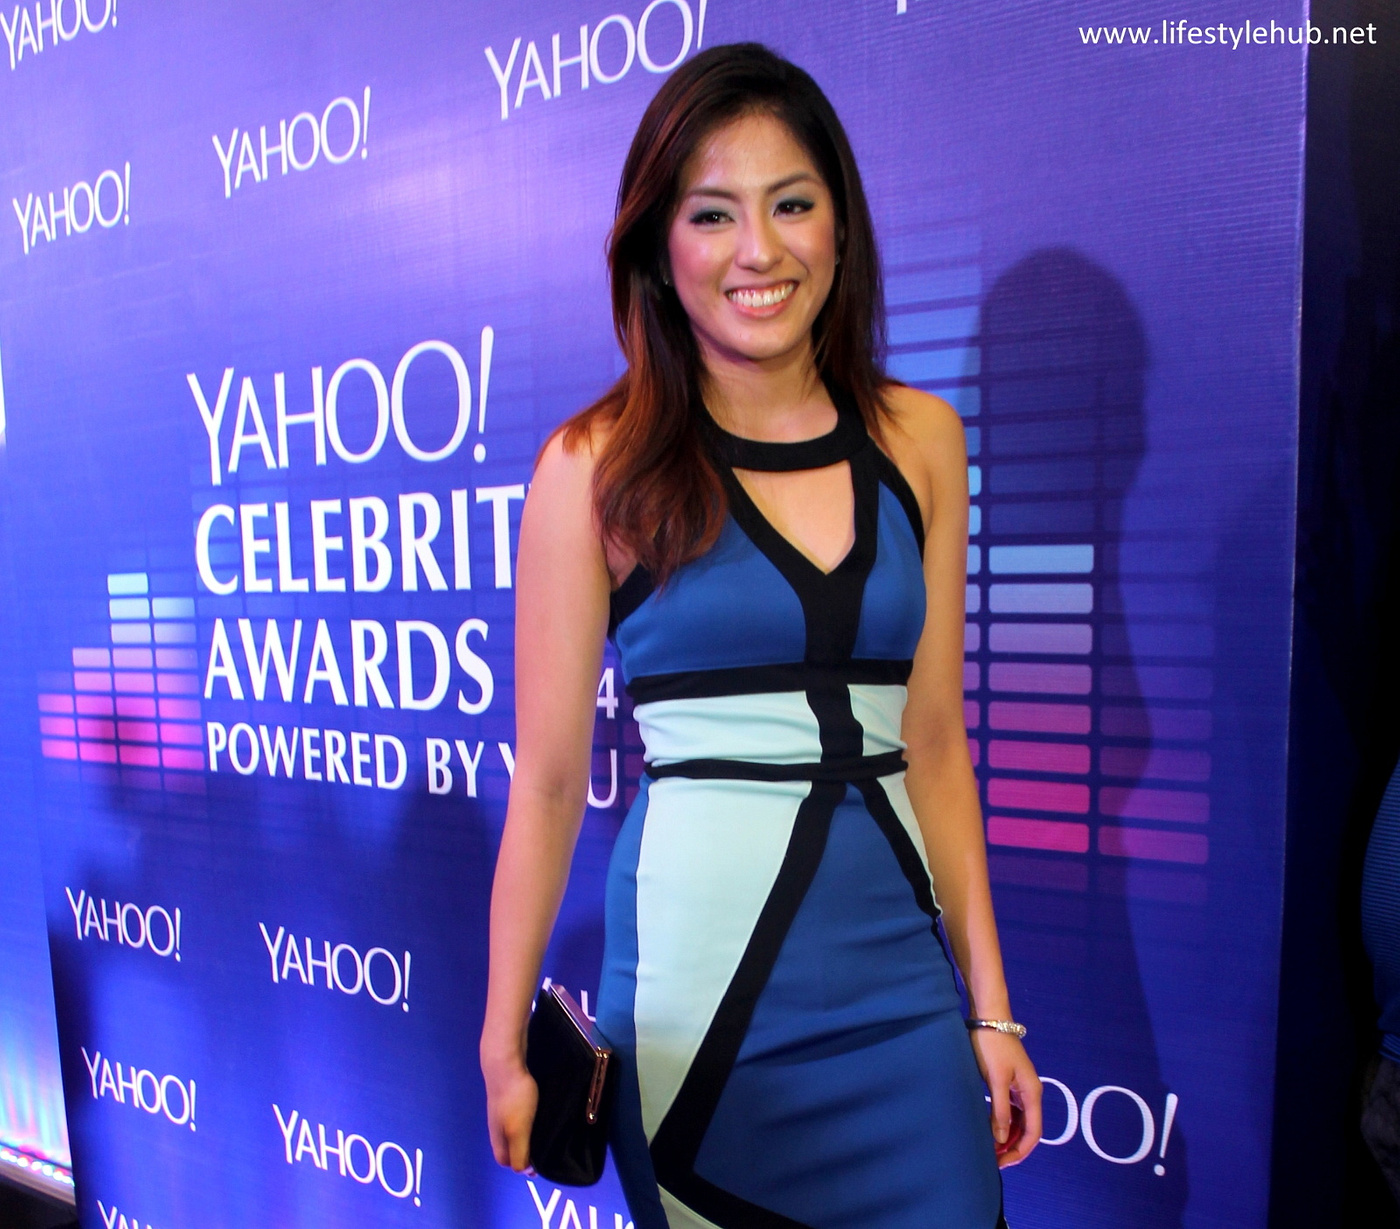 gretchen ho female hotlethe yahoo awards